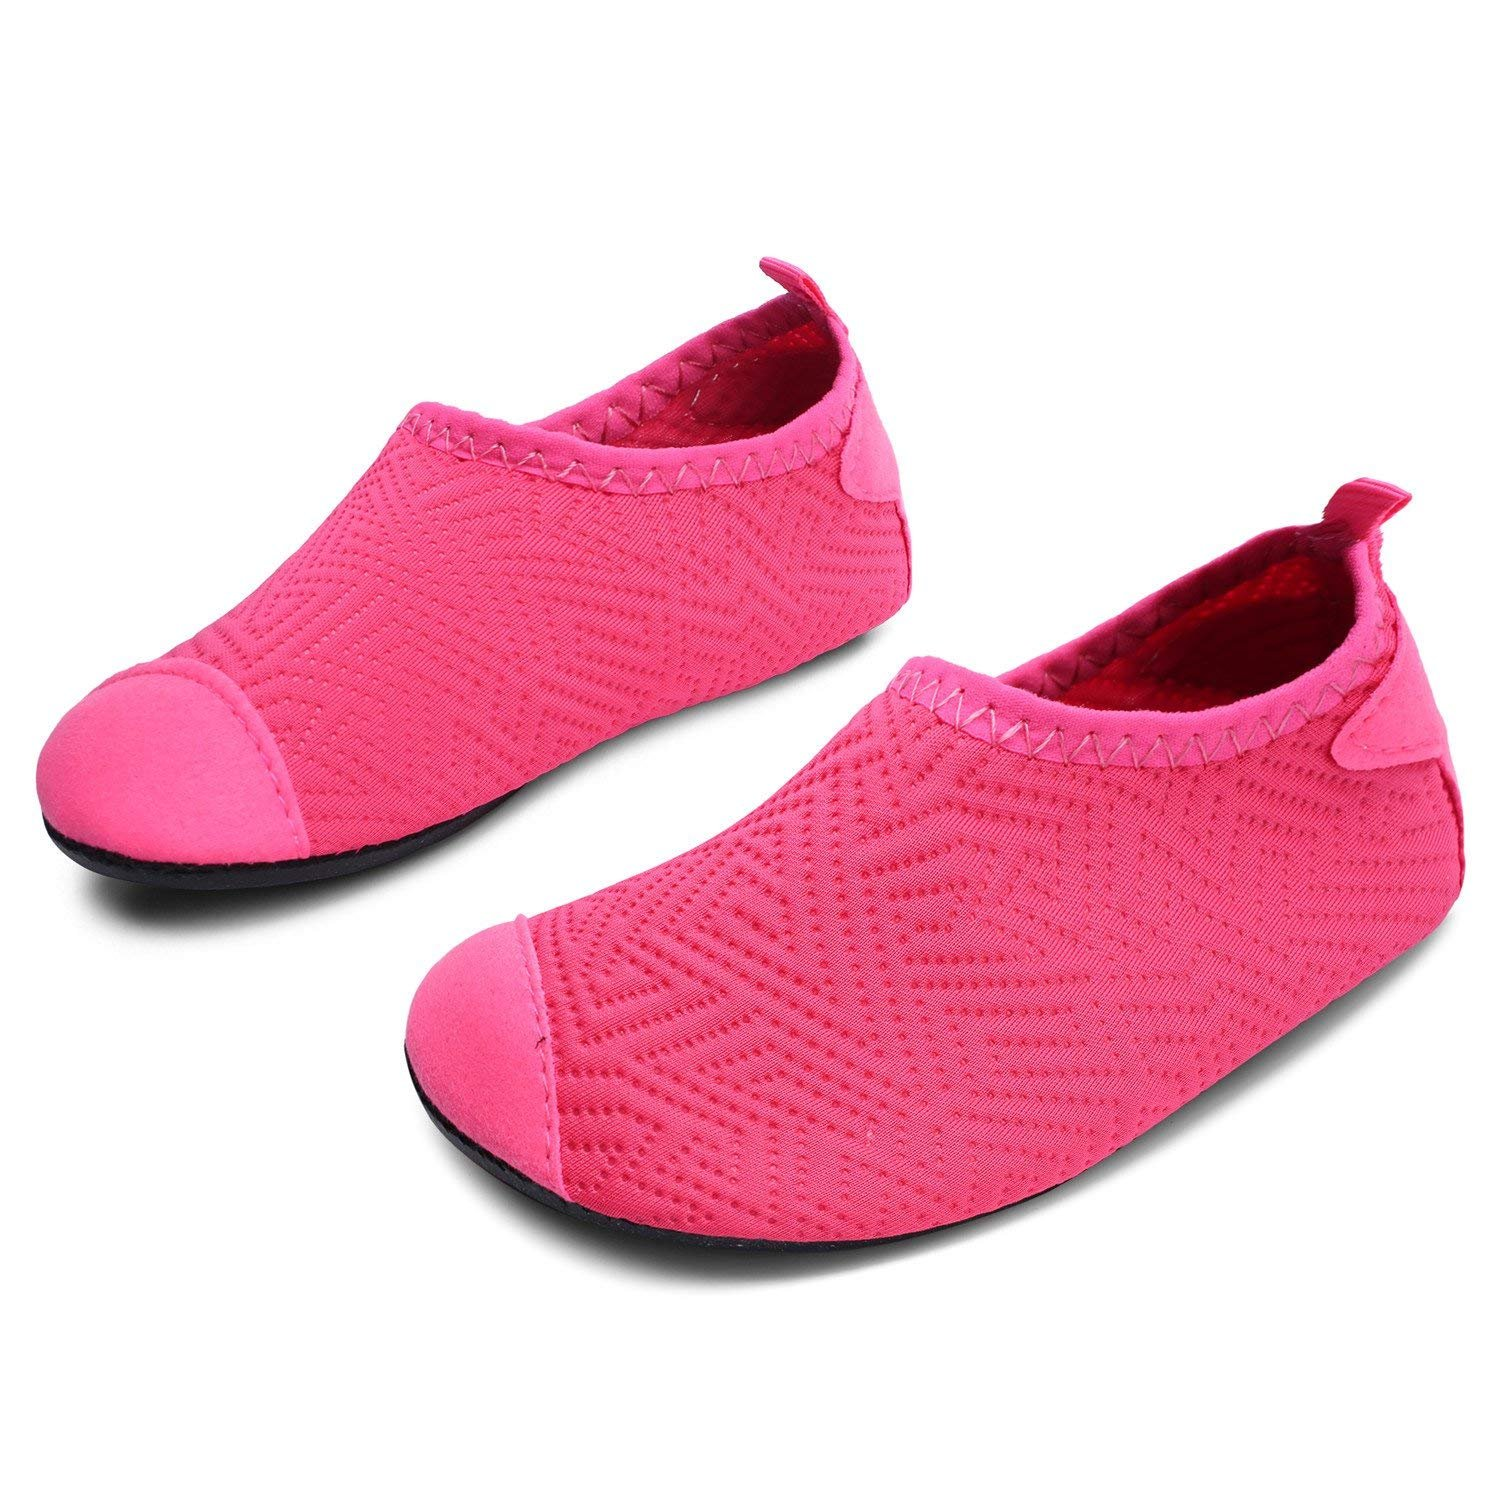 L-RUN Kids Swim Water Shoes Barefoot Aqua Socks Shoes Beach Pool Surfing Yoga L-RUN-CT-2_ca